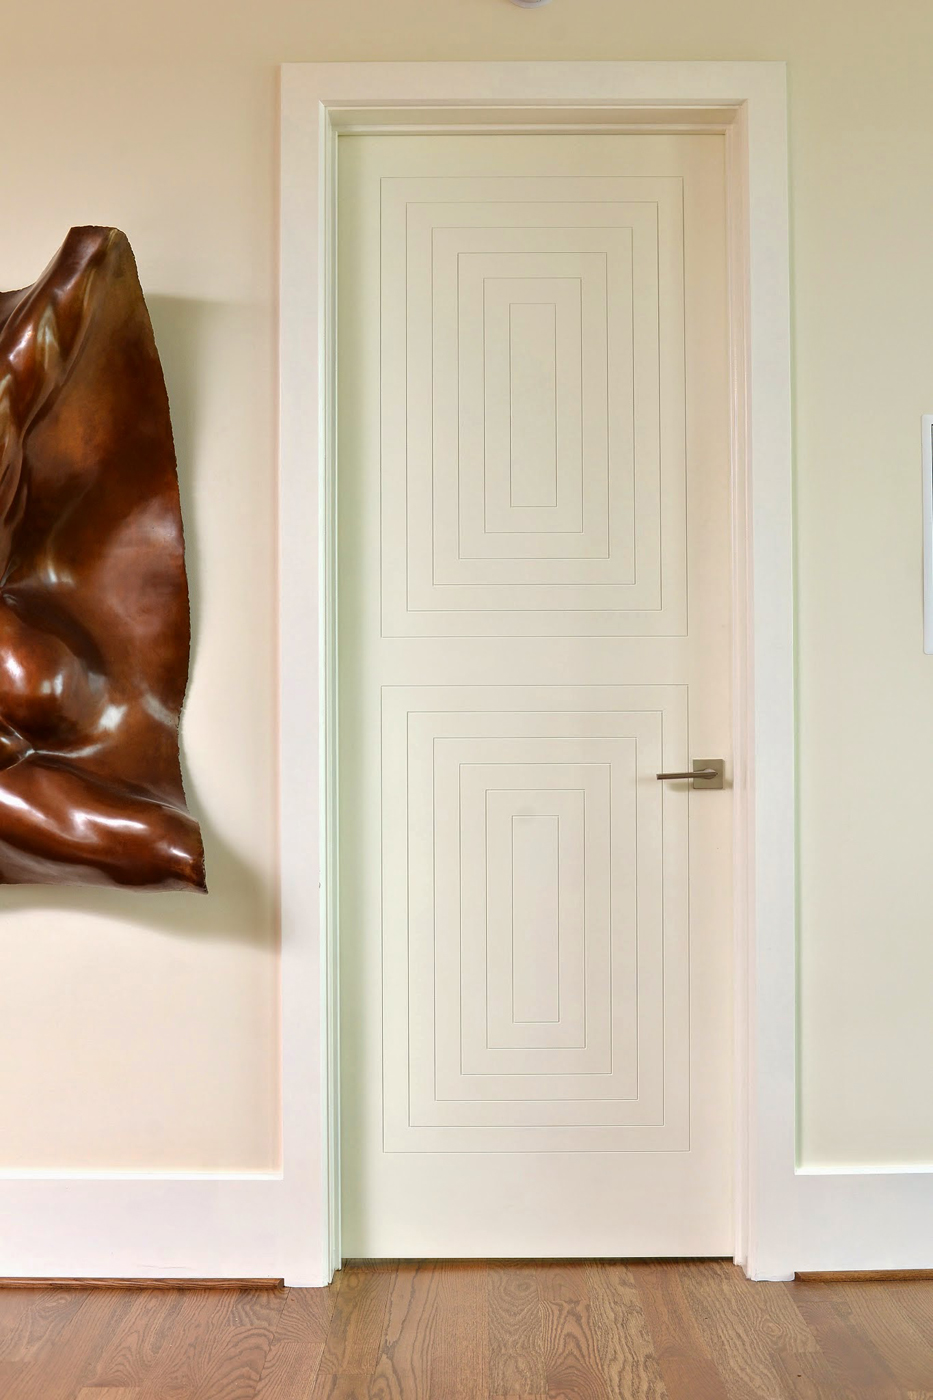 Custom interior door with concentric rectangular box detail and modern sculpture on wall | Savage Interior Design